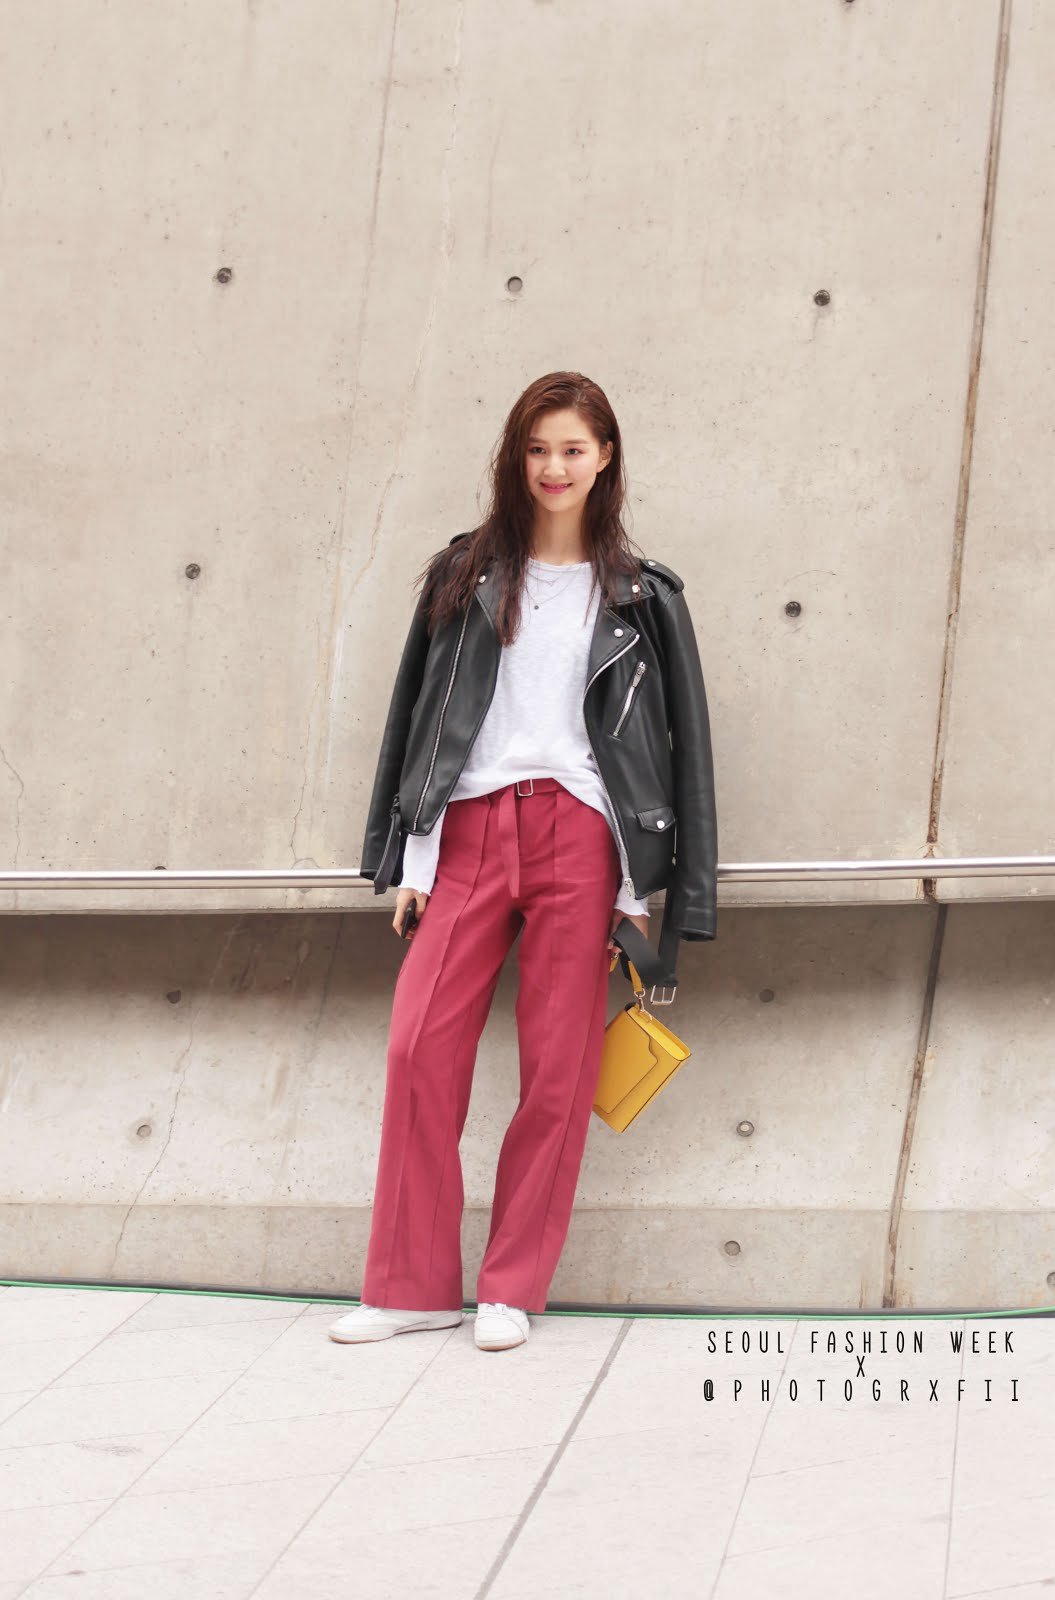 seoul fashion week ss18 female models off duty